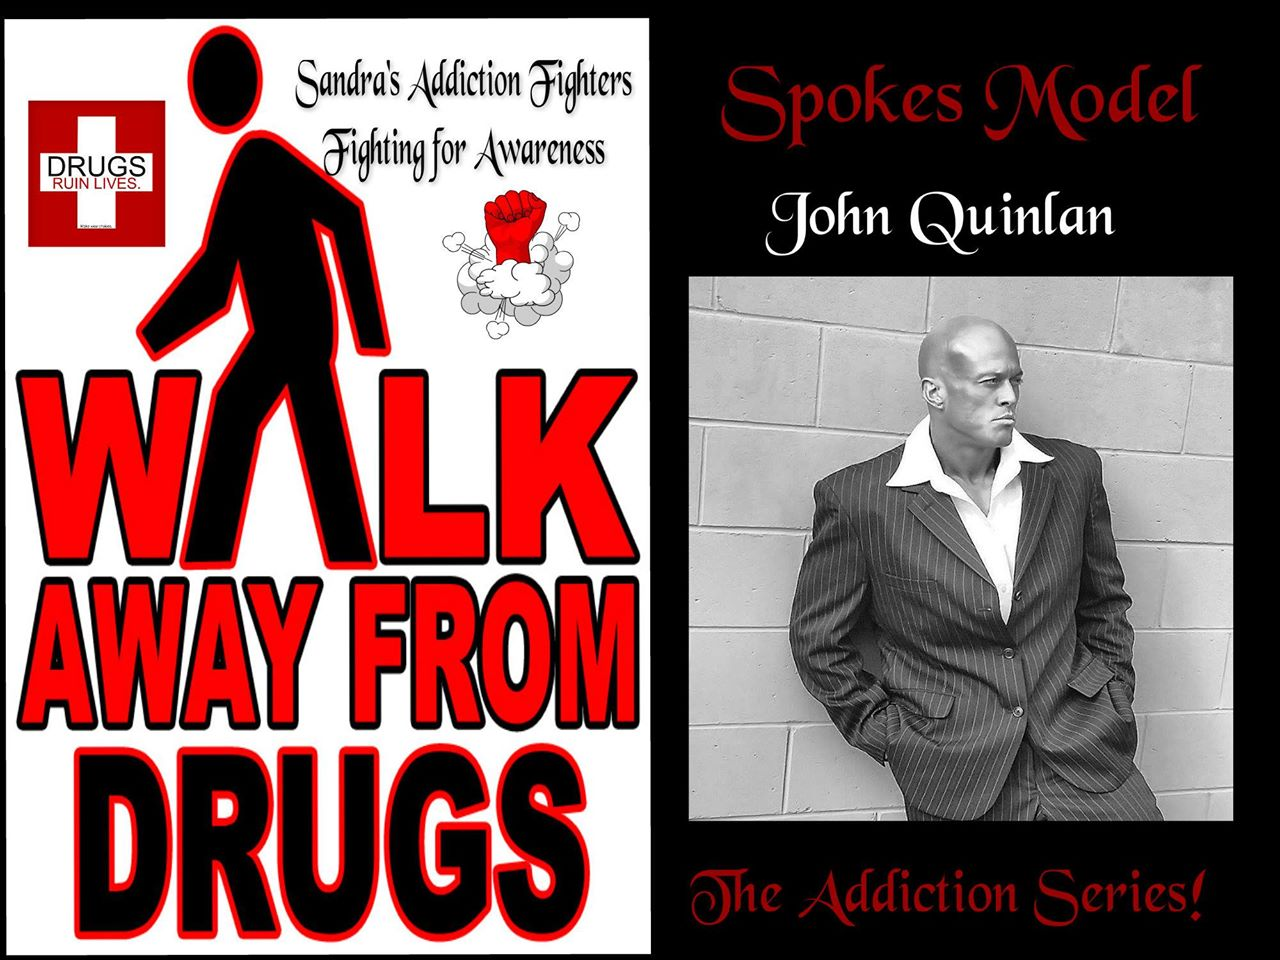 Addiction Series Celebrity Spokes Model John Joseph Quinlan Drugs Awareness Poster by Sandra Shrewsbury